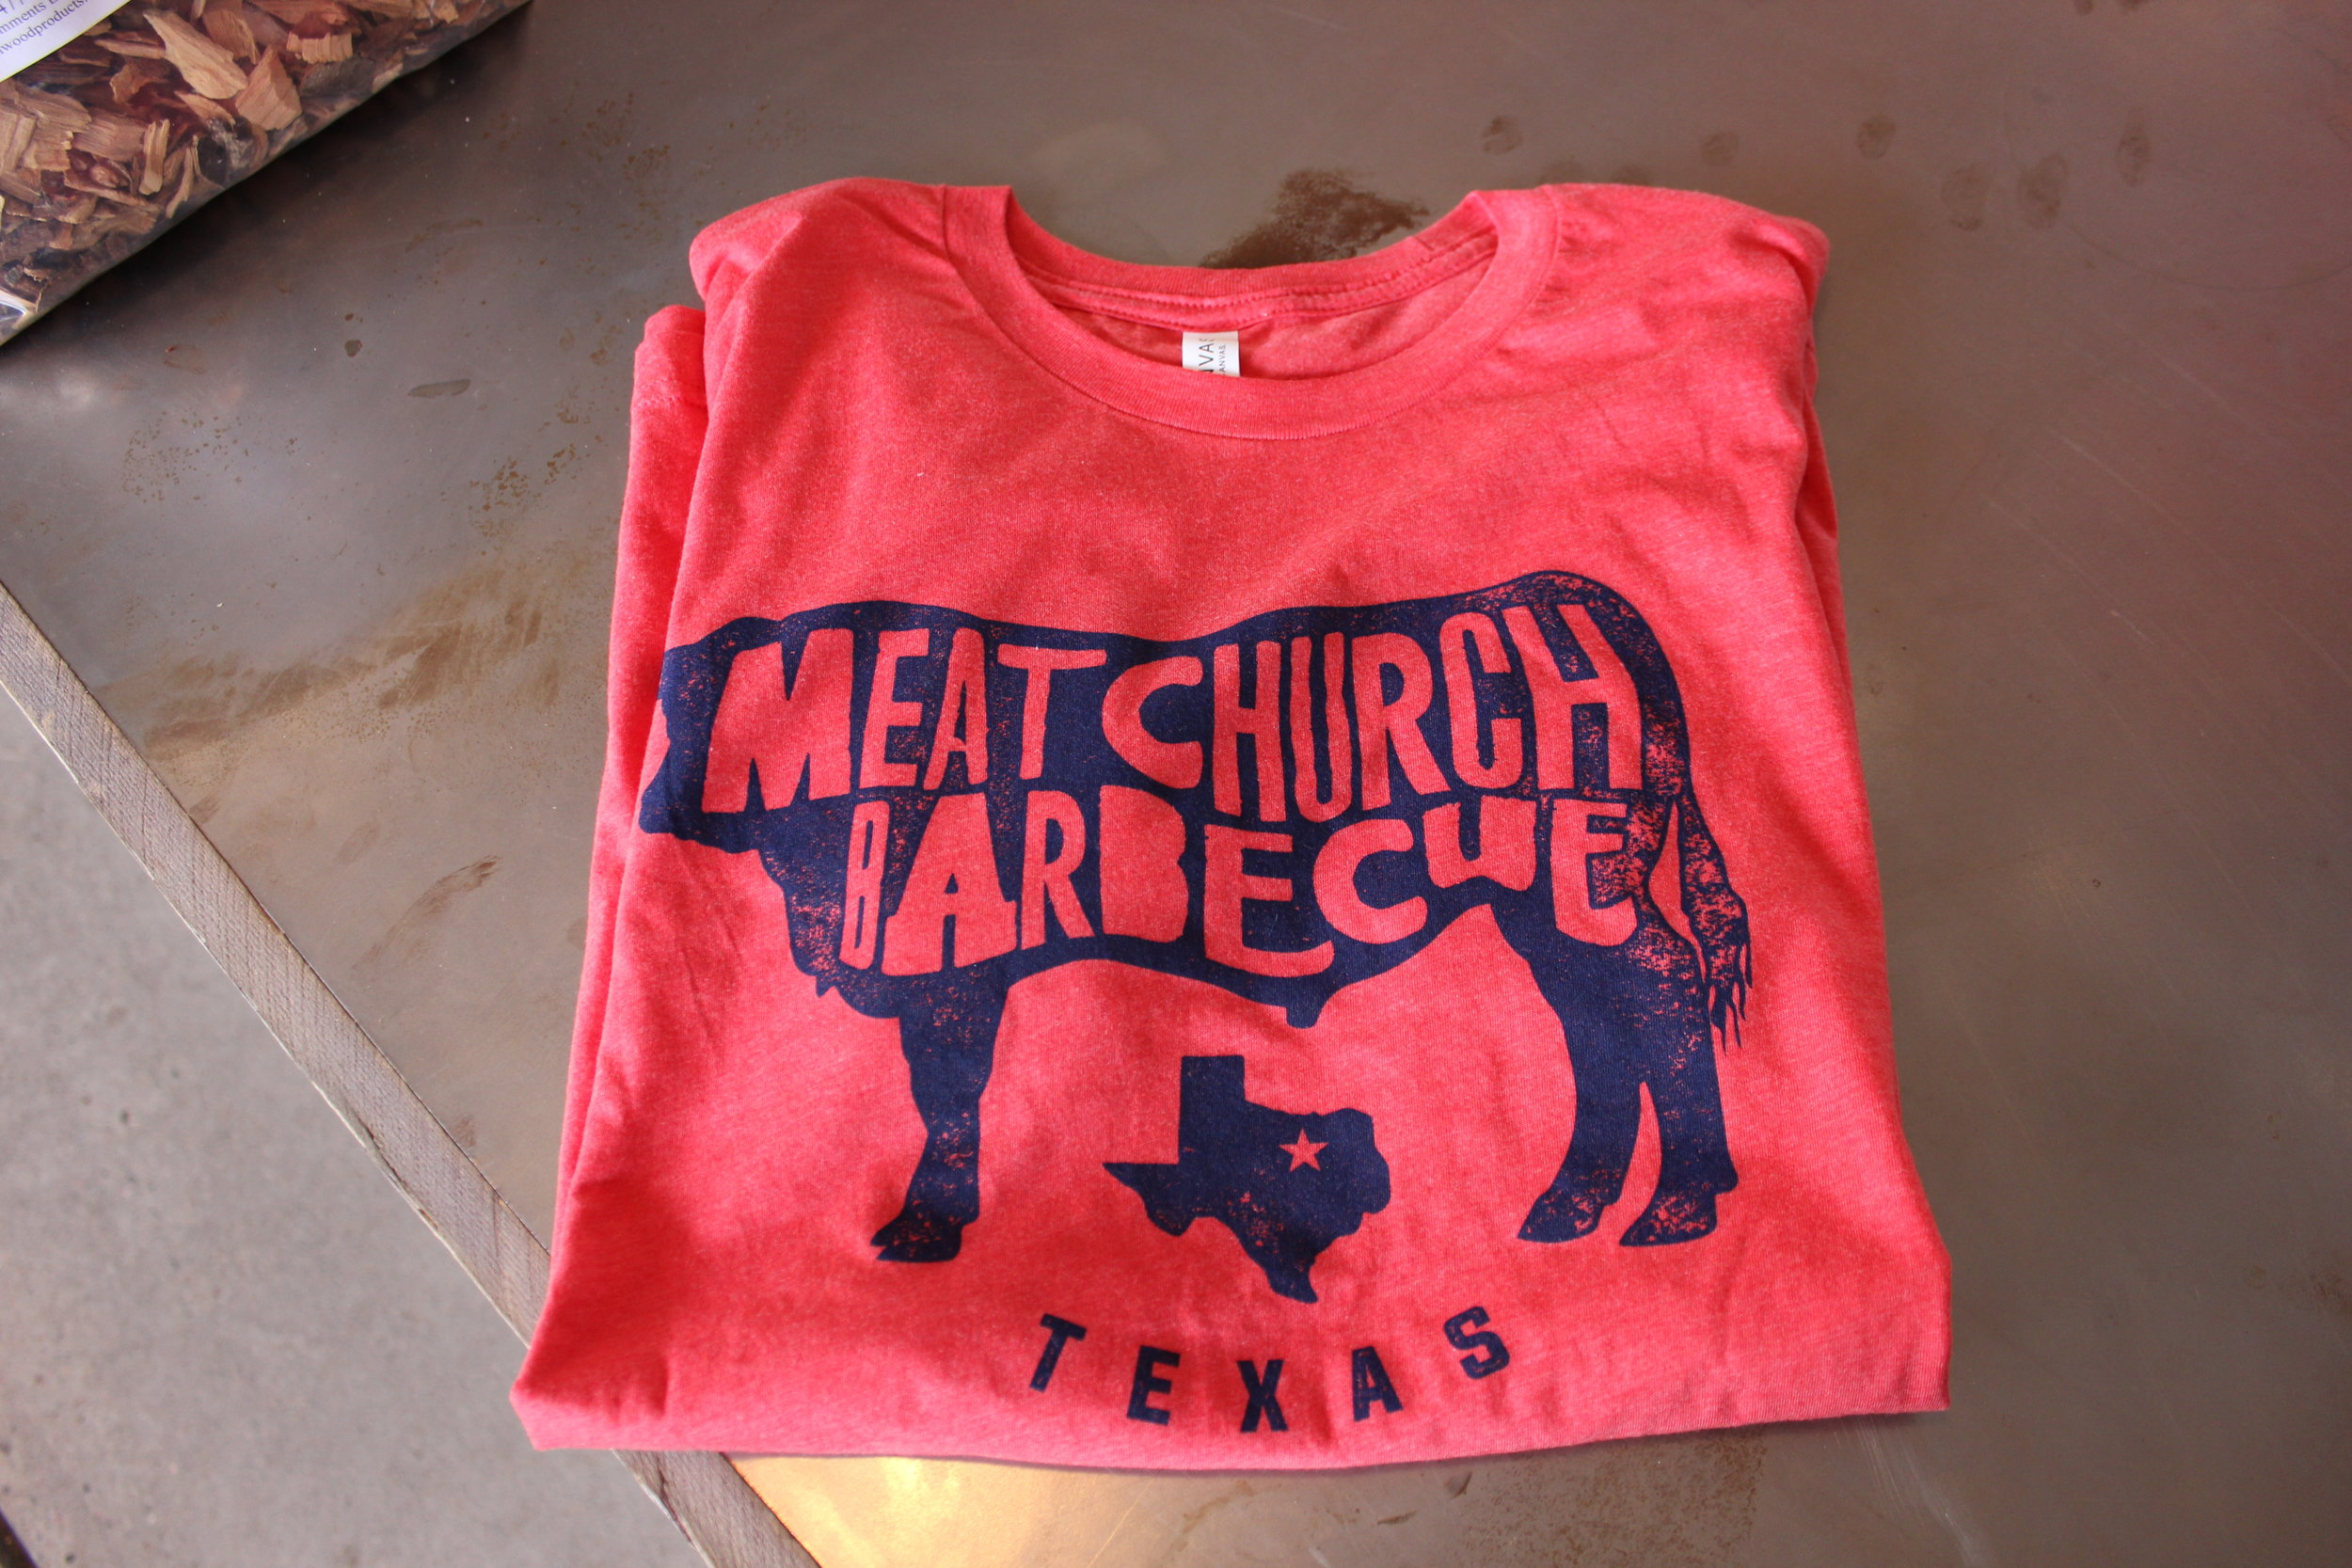 Meat Church T